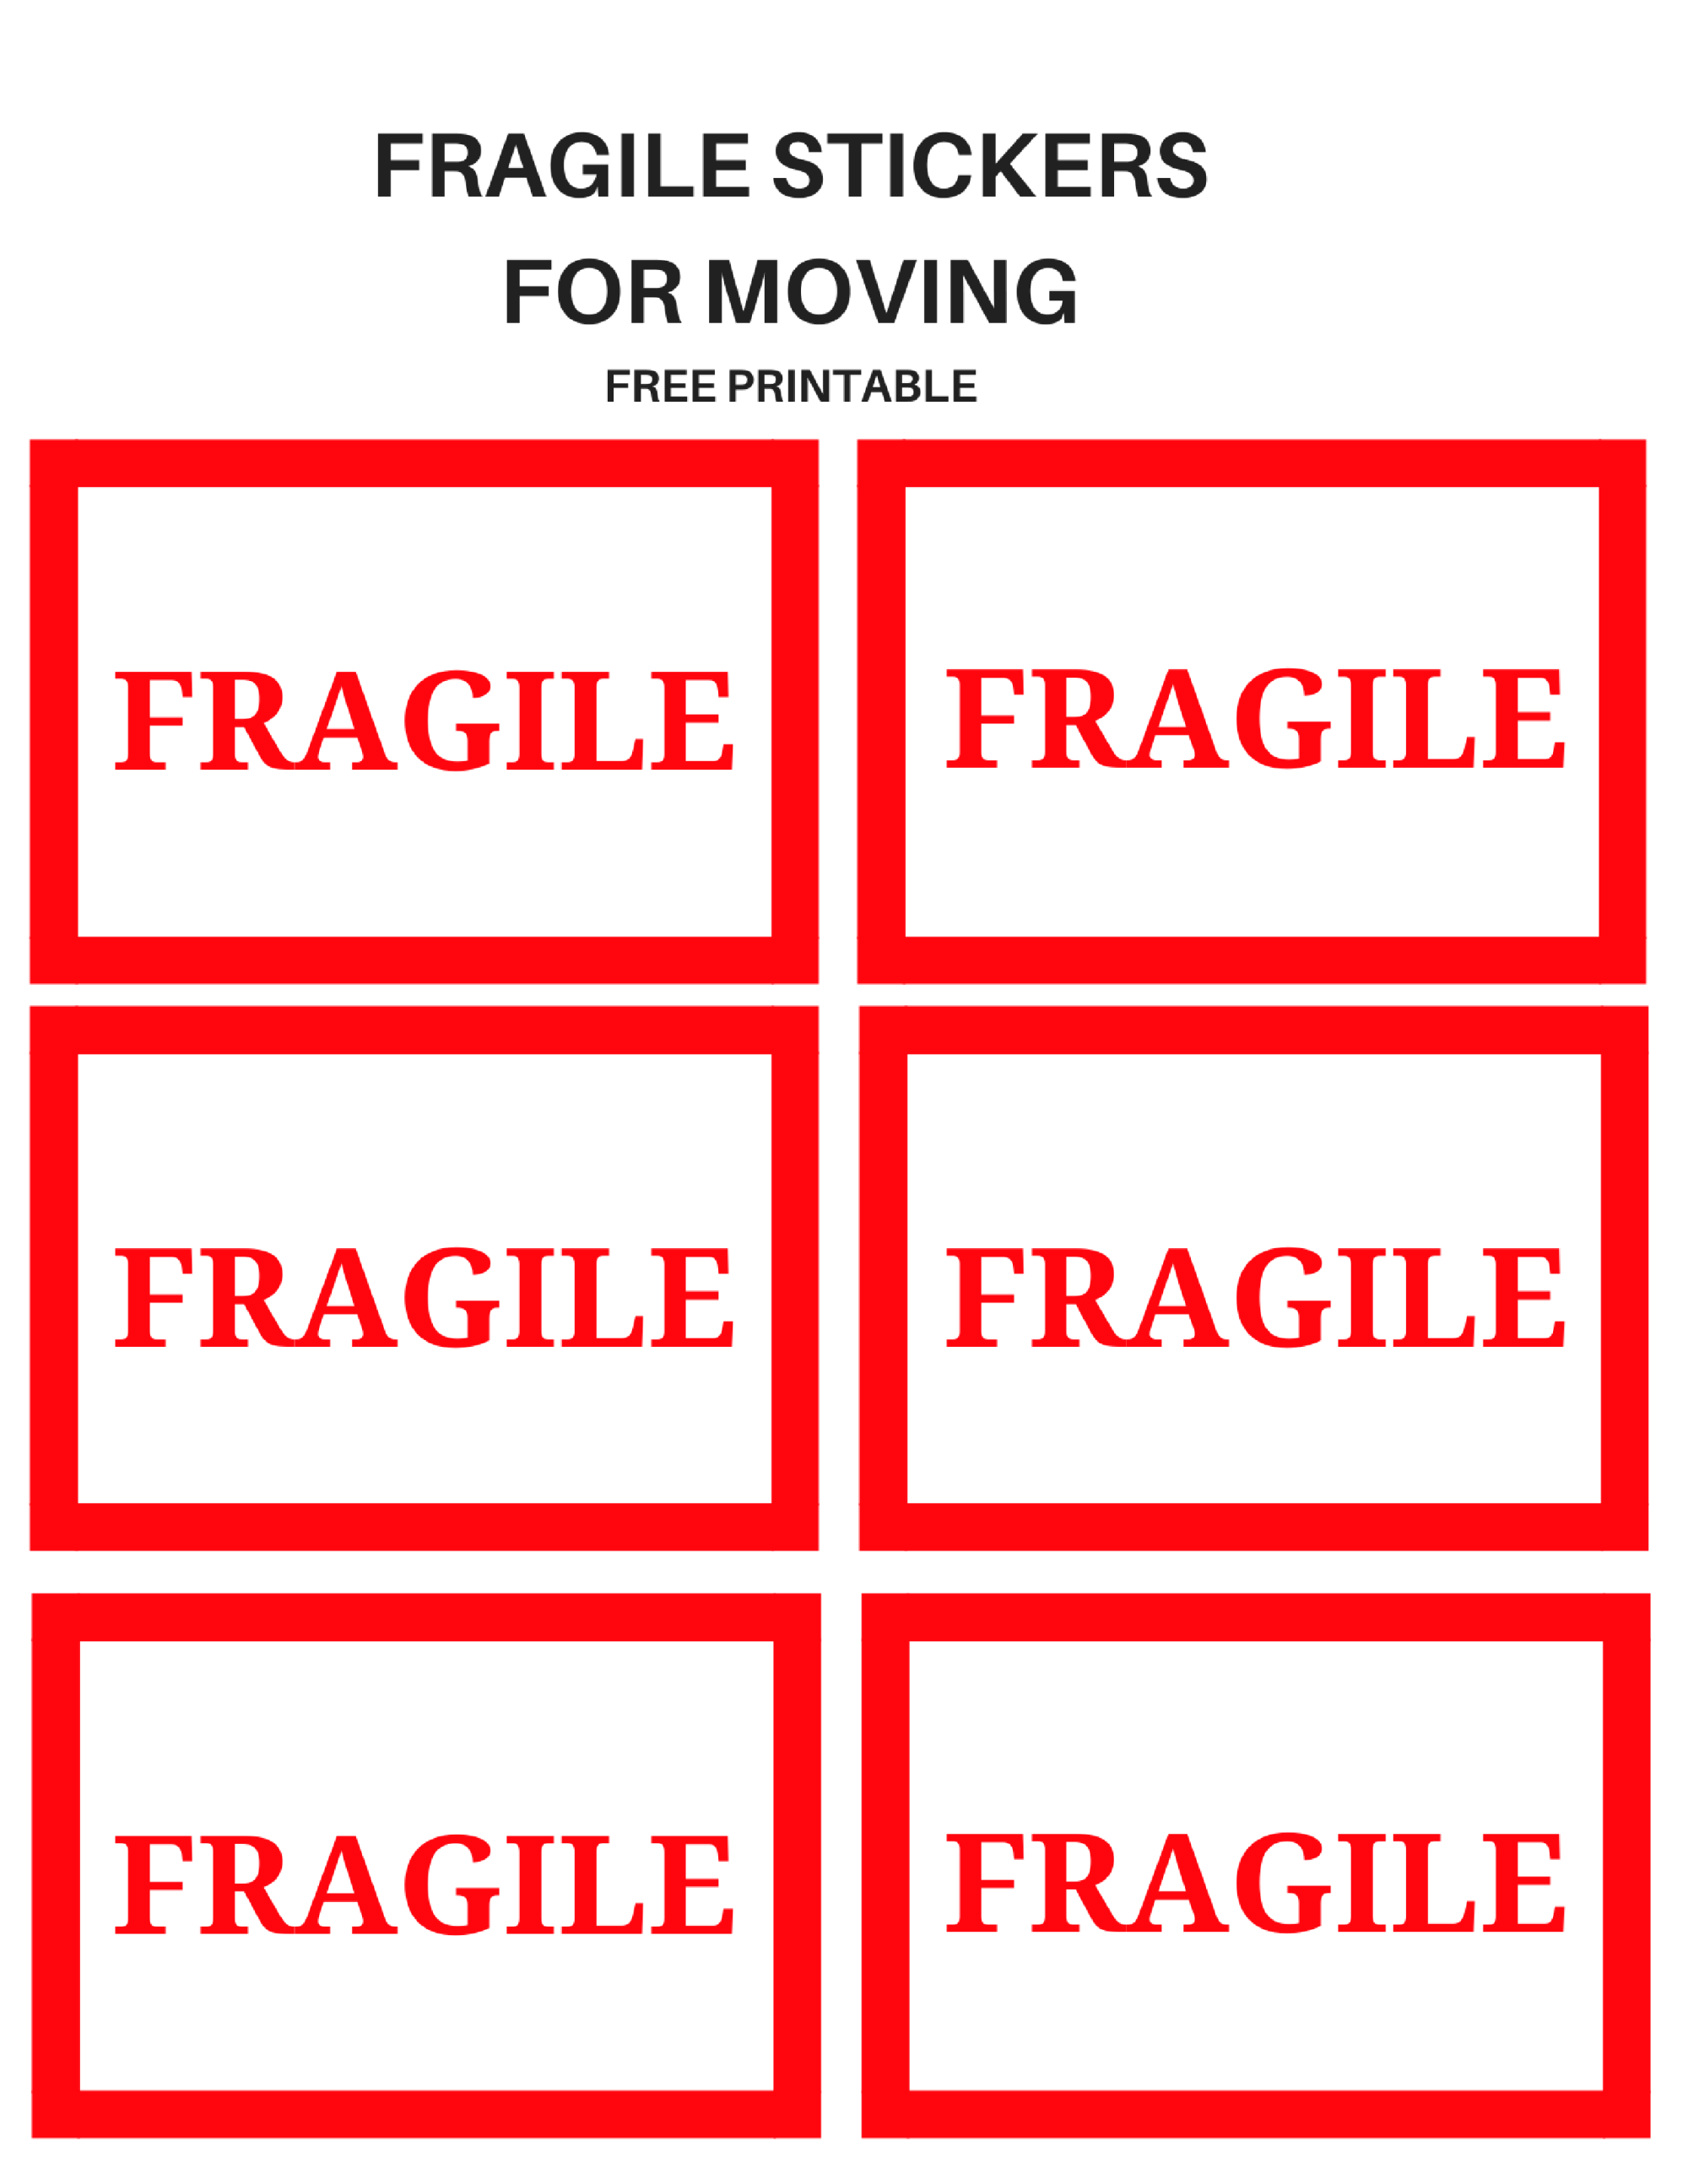 image relating to Fragile Glass Labels Printable named Sensitive Transferring Stickers Going inside 2019 Going labels